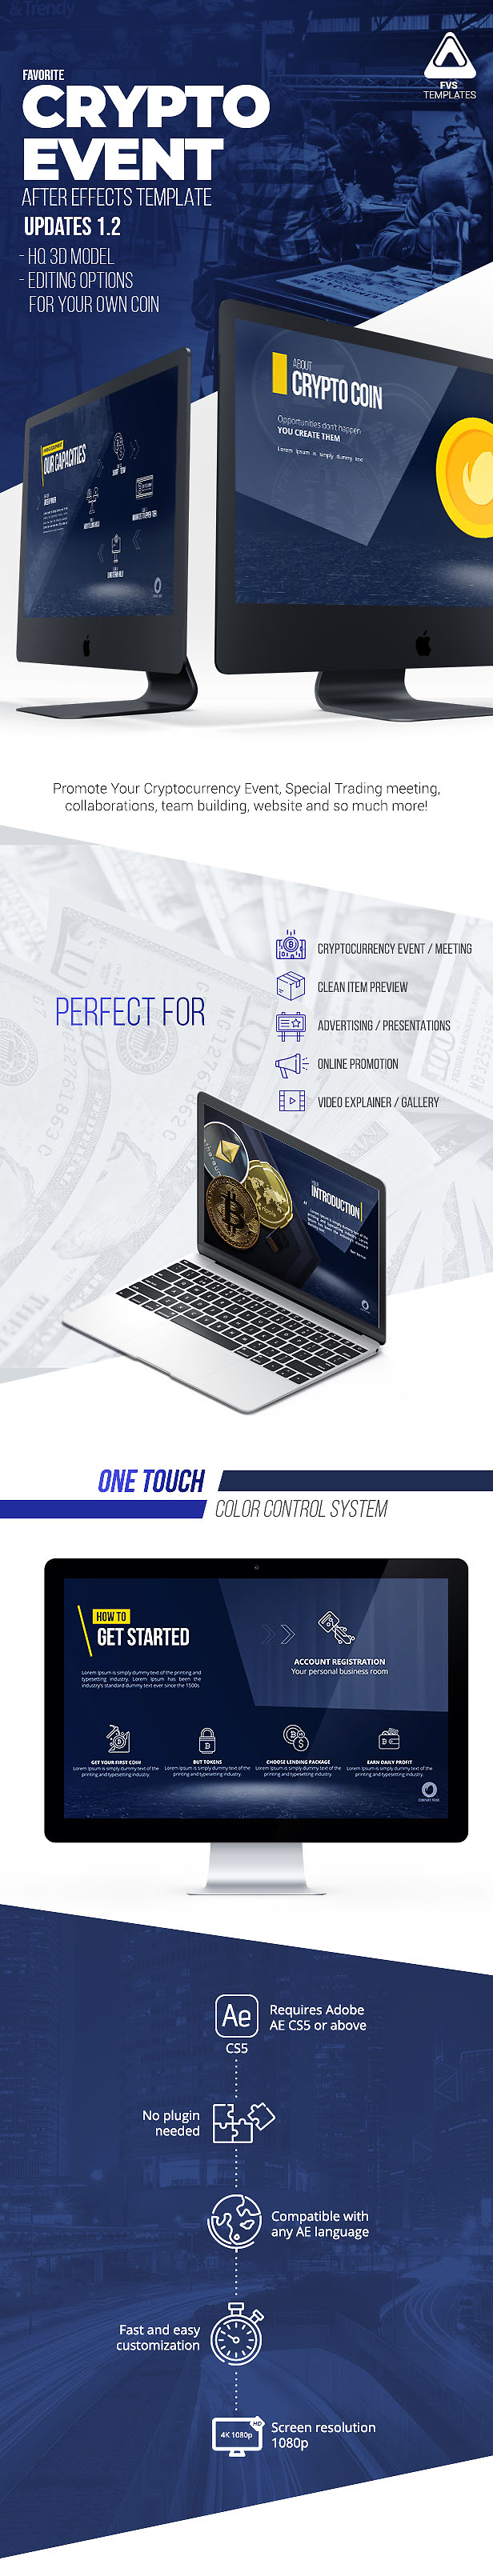 Cryptocurrency Event Broadcast Pack 2018